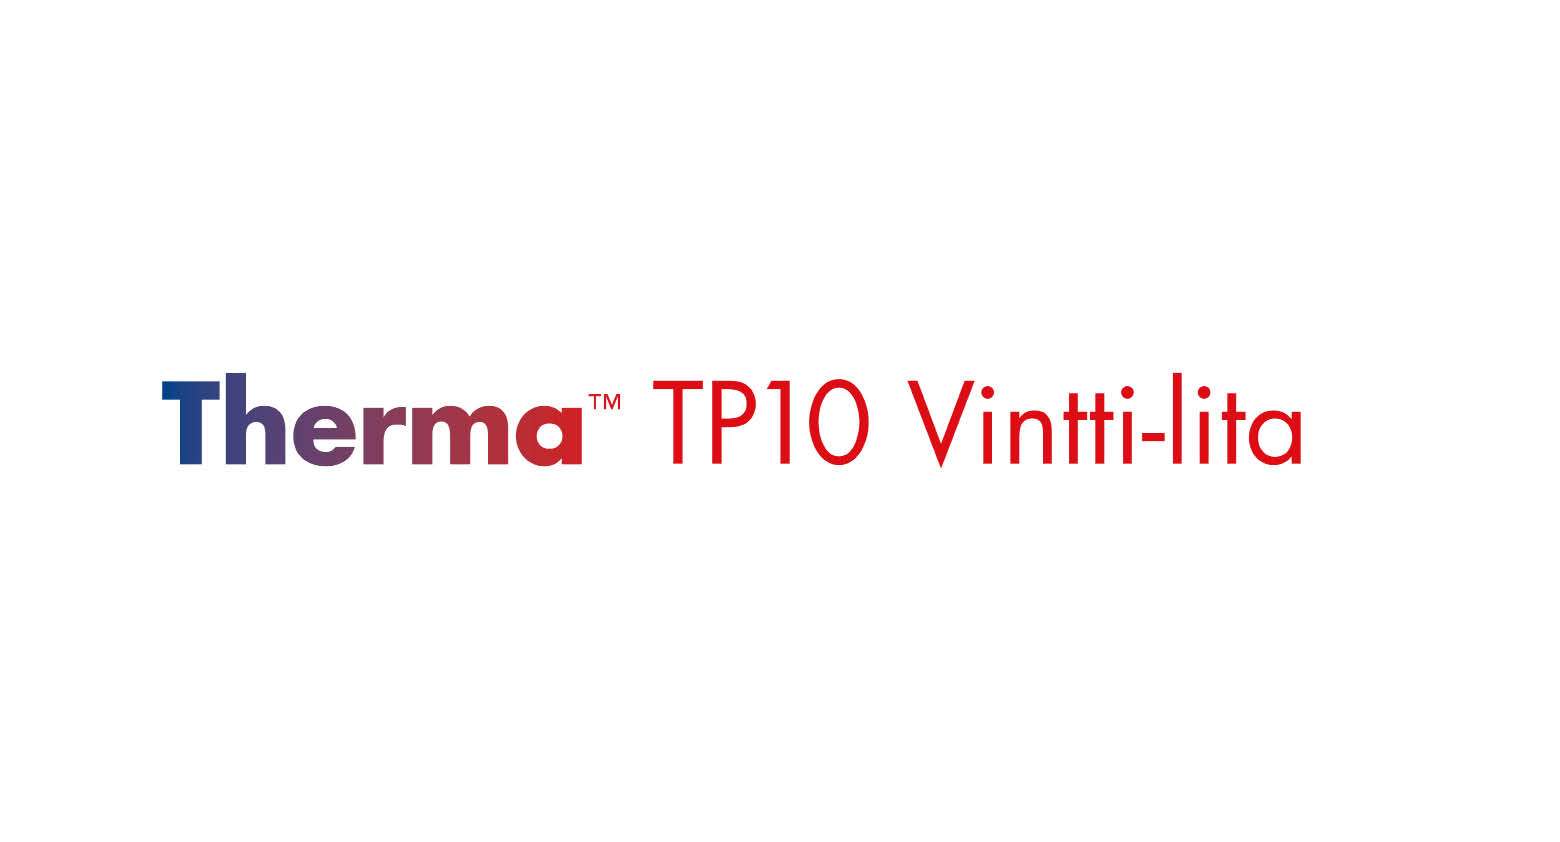 ThermaTM TP10 Vintti l opt